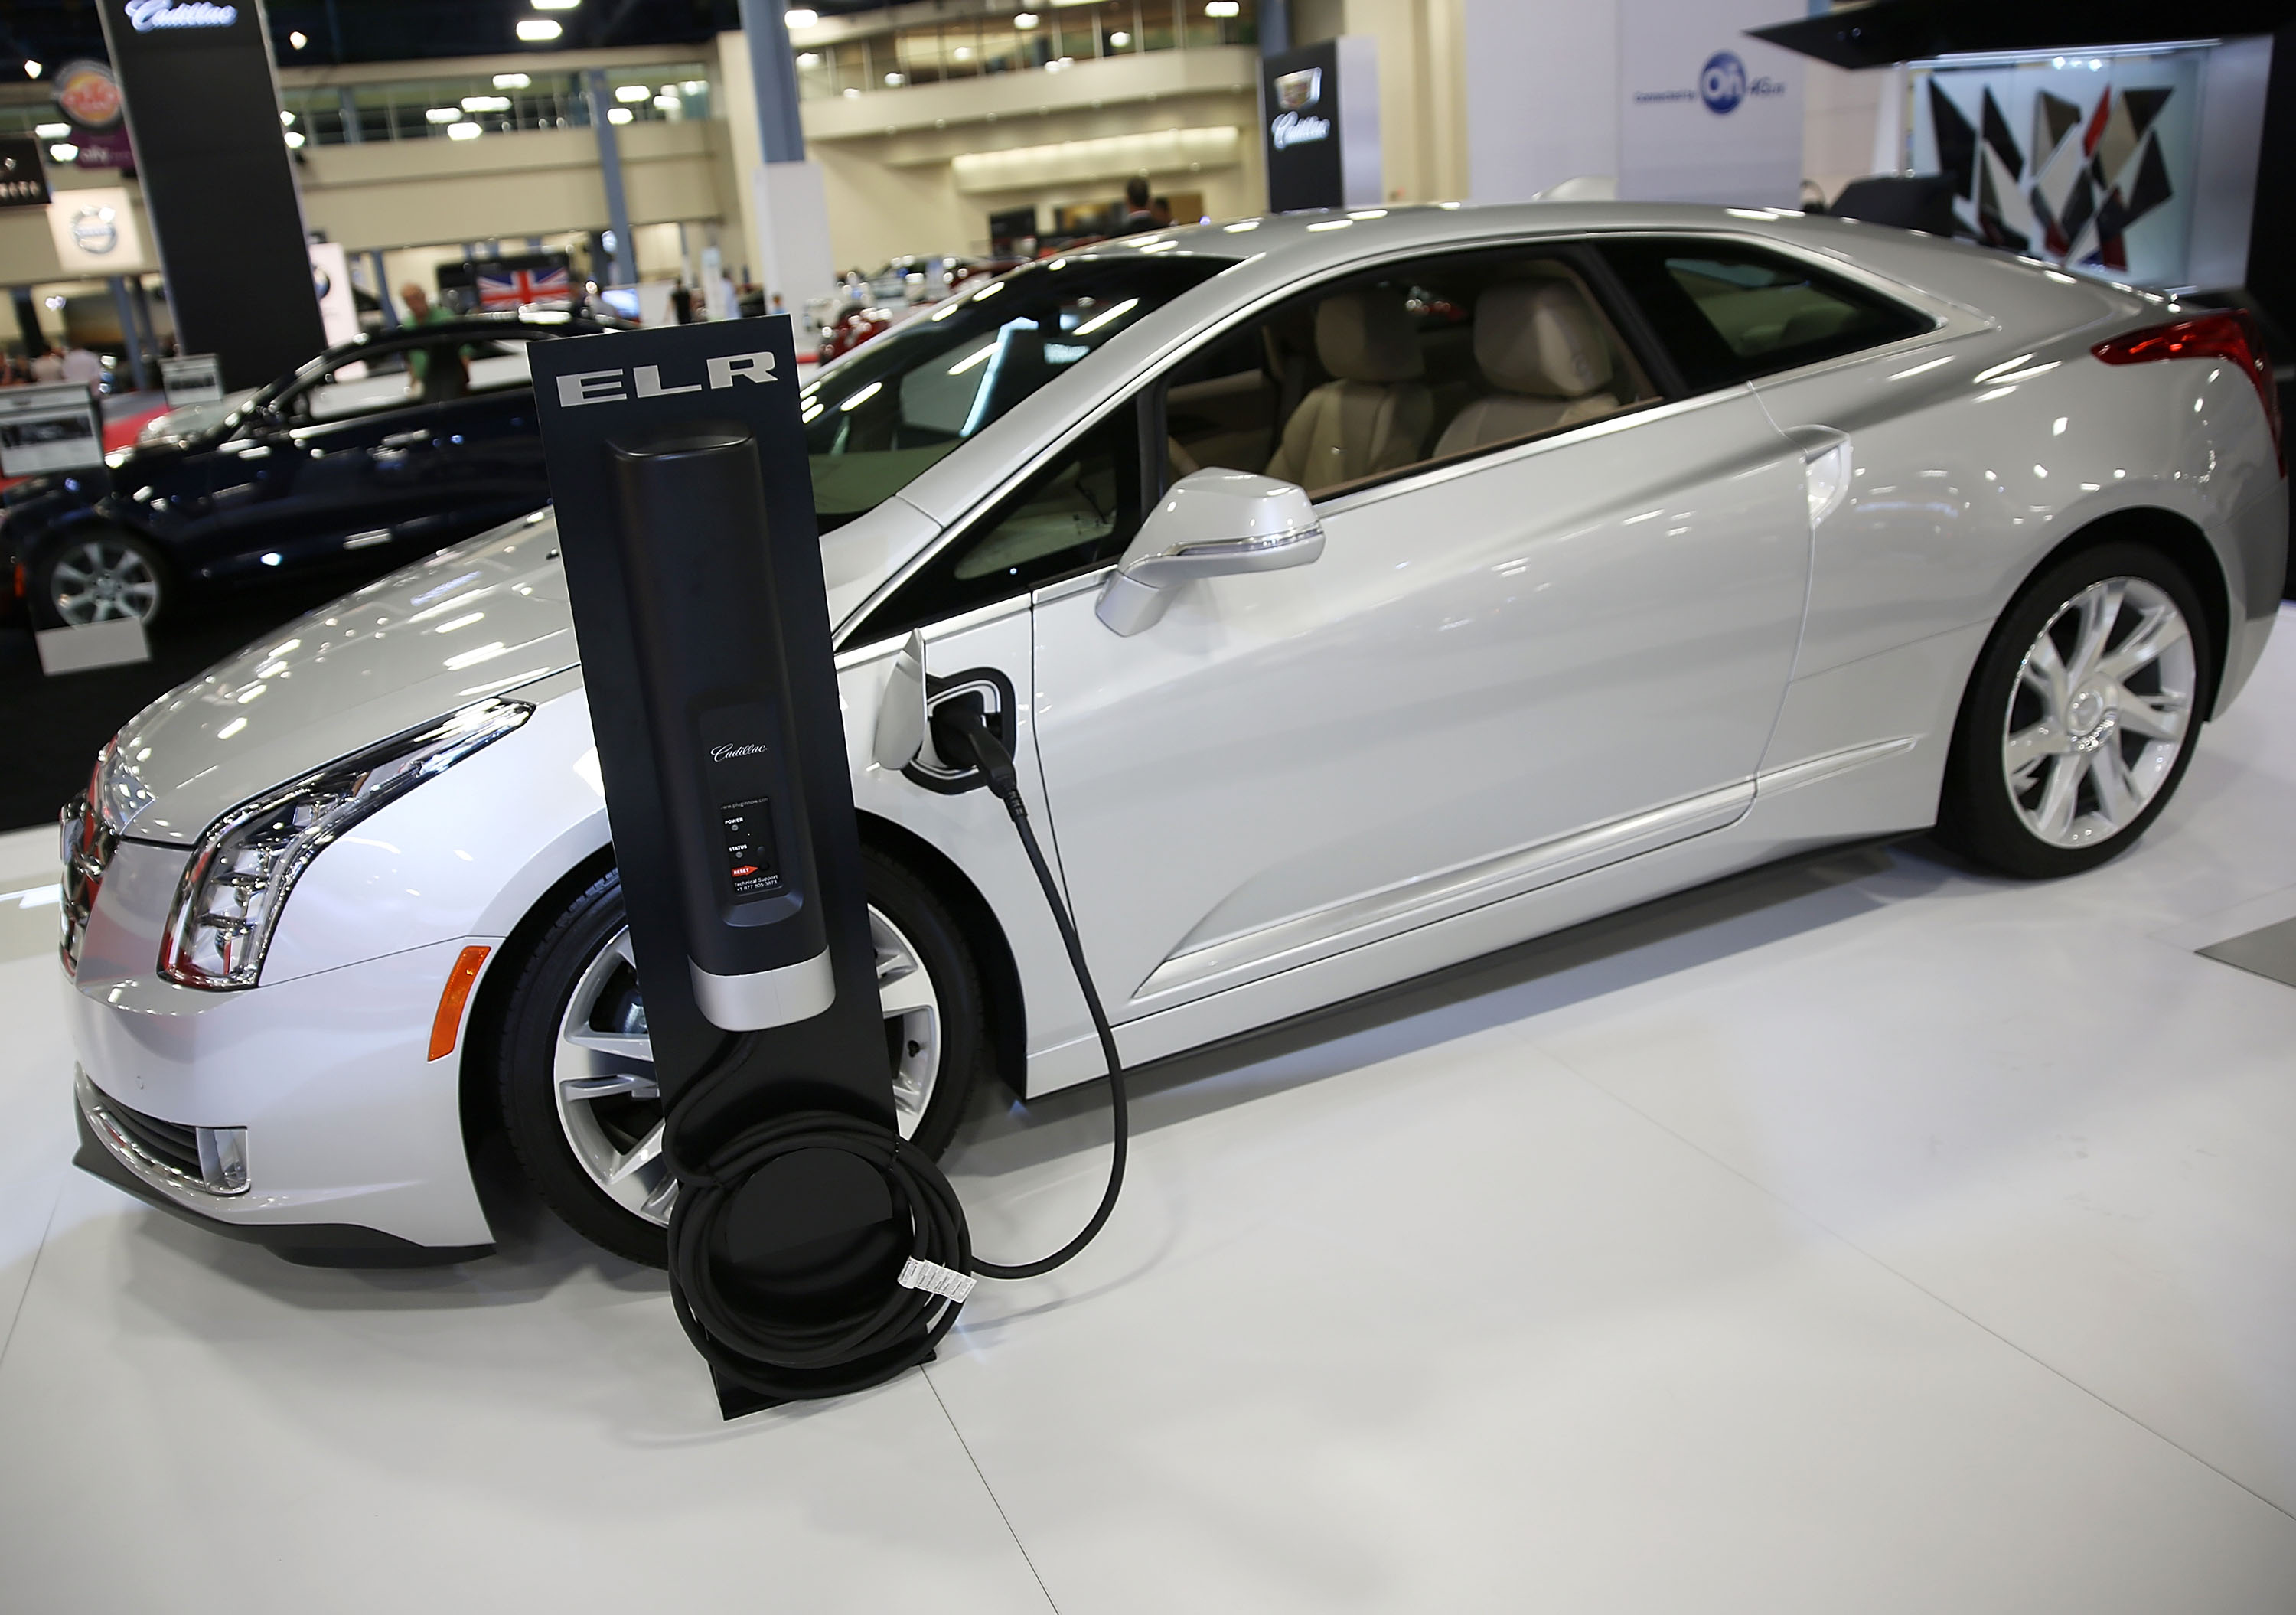 The 2016 Cadillac ELR at the Miami Beach International Auto Show, November 2015